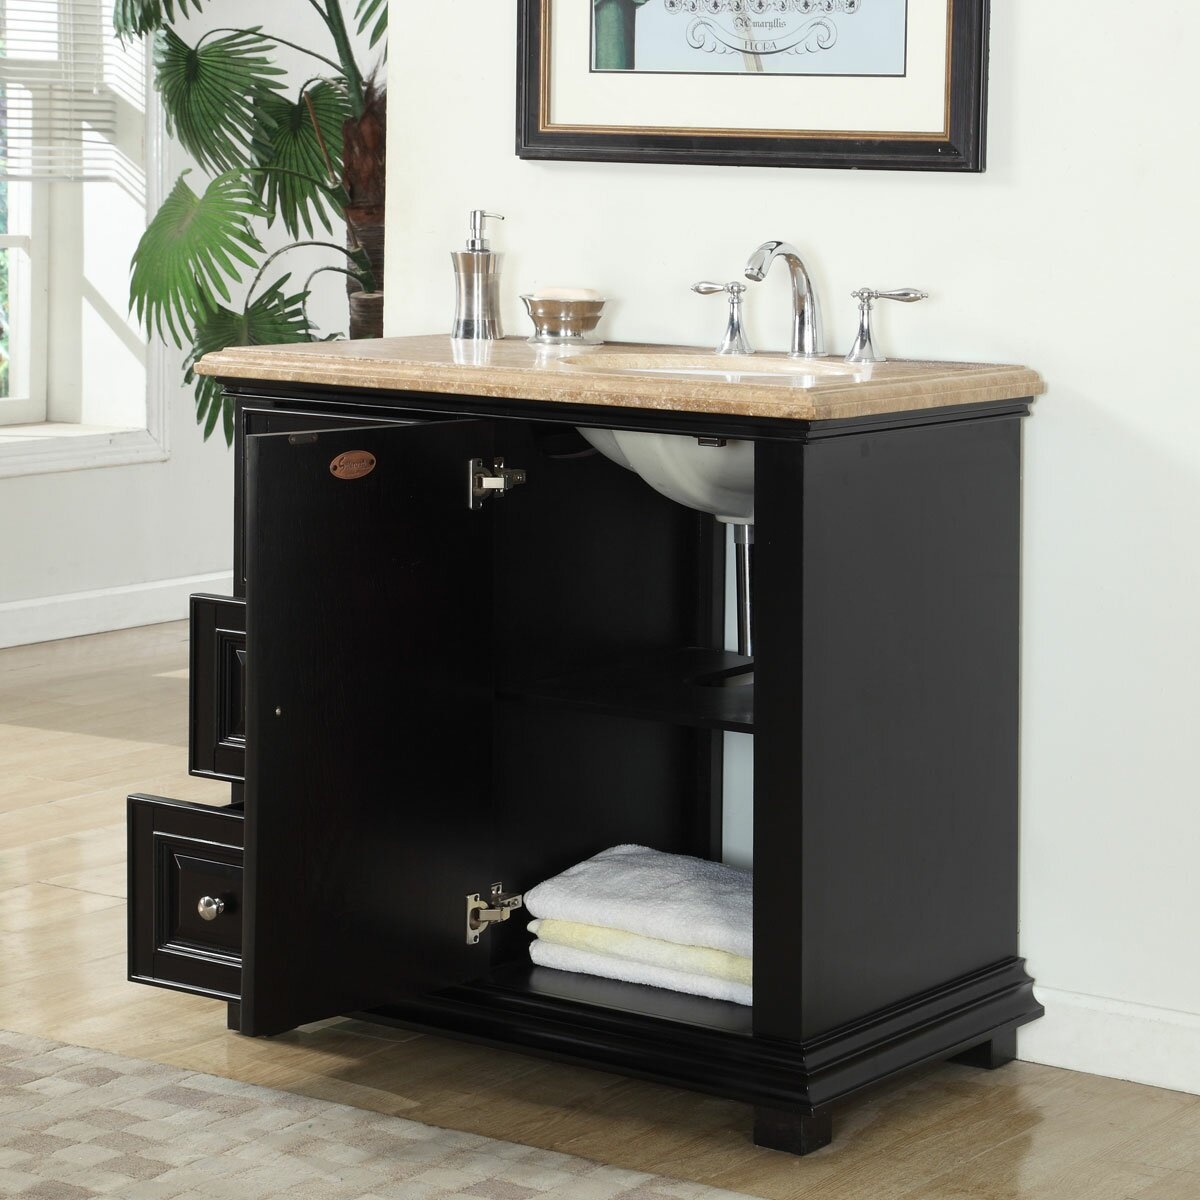 Silkroad Exclusive 36 Quot Single Bathroom Vanity Set With